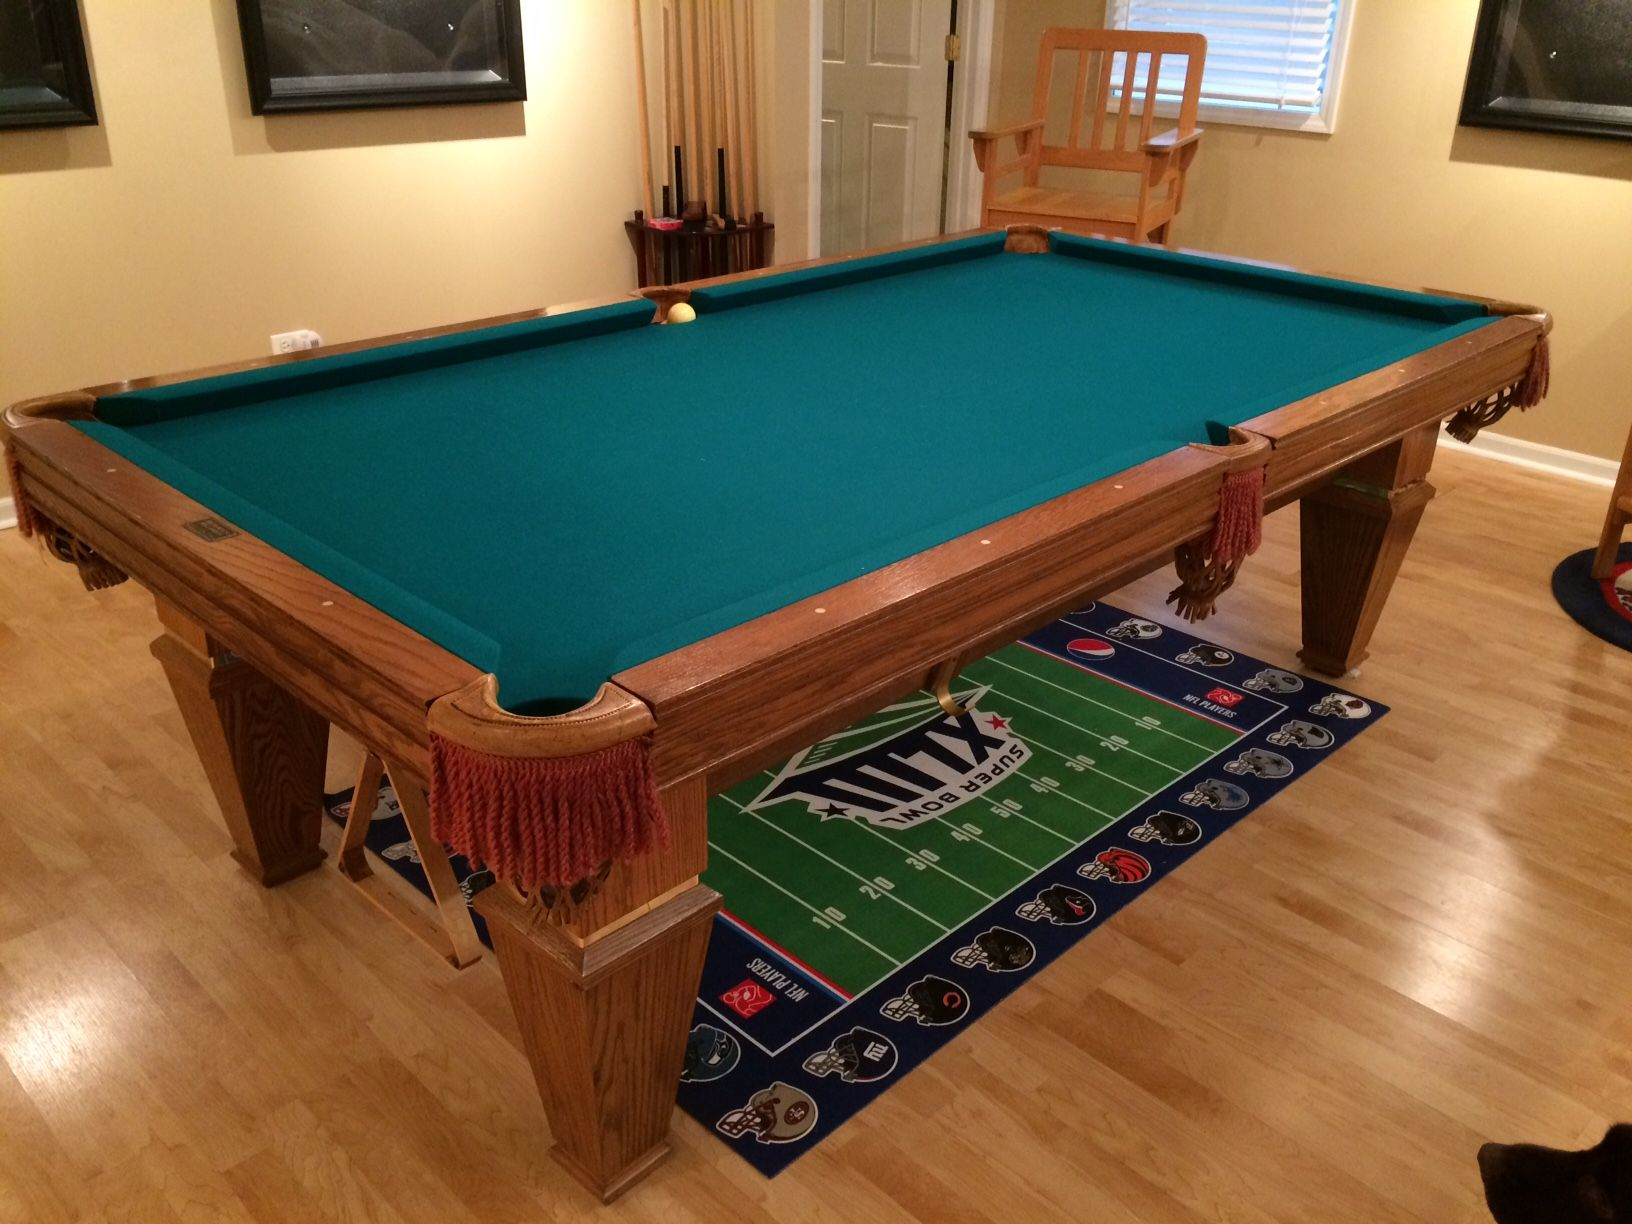 Brunswick Billiards Citidel Pool Table 8' Diy pool table